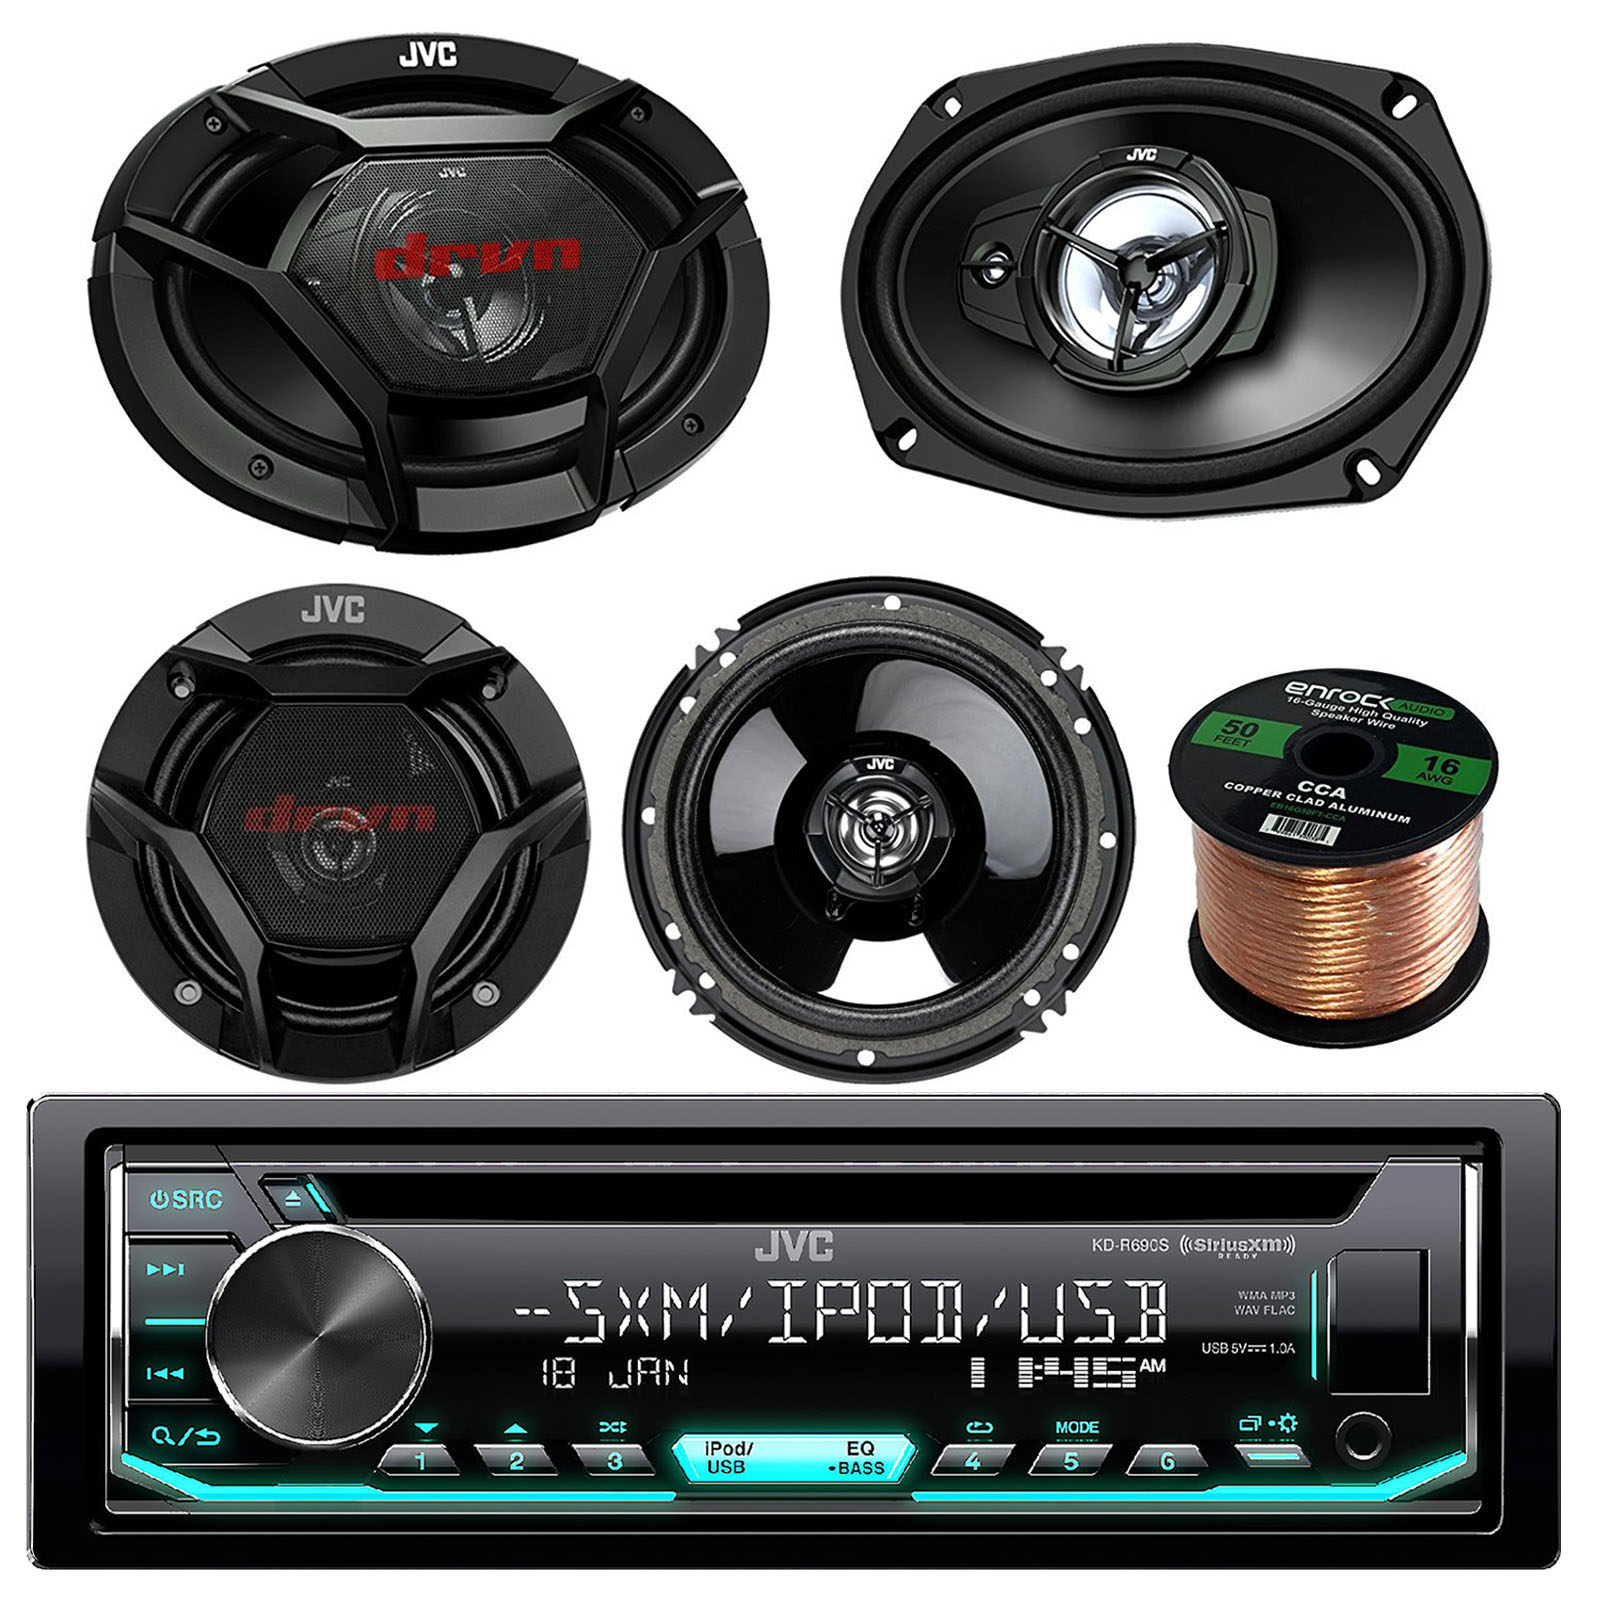 "JVC KD-R690S CD/MP3/WMA Receiver Bundle Combo With 2x JVC CS-DR6930 6x9"" 1000w 3-Way Vehicle Stereo Coaxial Speakers + 2x CS-DR620 6.5"" 300W 2-Way Audio Speakers + Enrock 50 Foot 16 Gauge Speaker Wire"